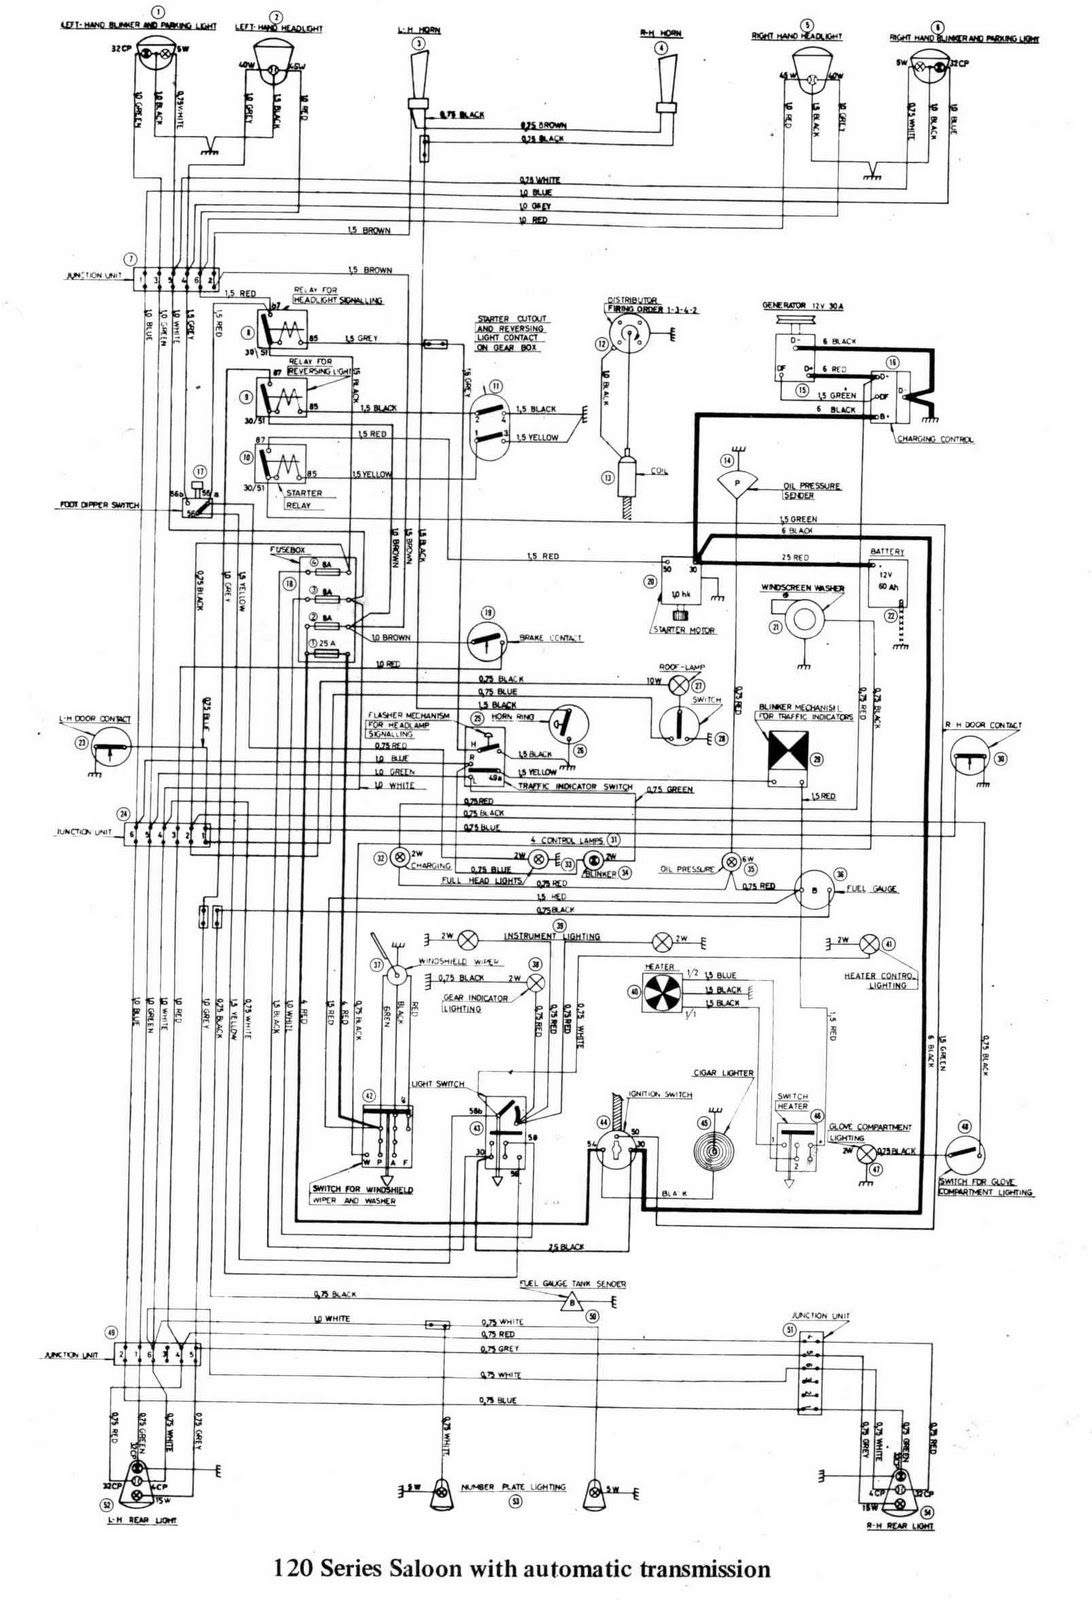 [ZTBE_9966]  Volvo V70 Electrical Diagram - 02 Explorer Fuse Diagram for Wiring Diagram  Schematics | Volvo V70 Schematics |  | Wiring Diagram Schematics